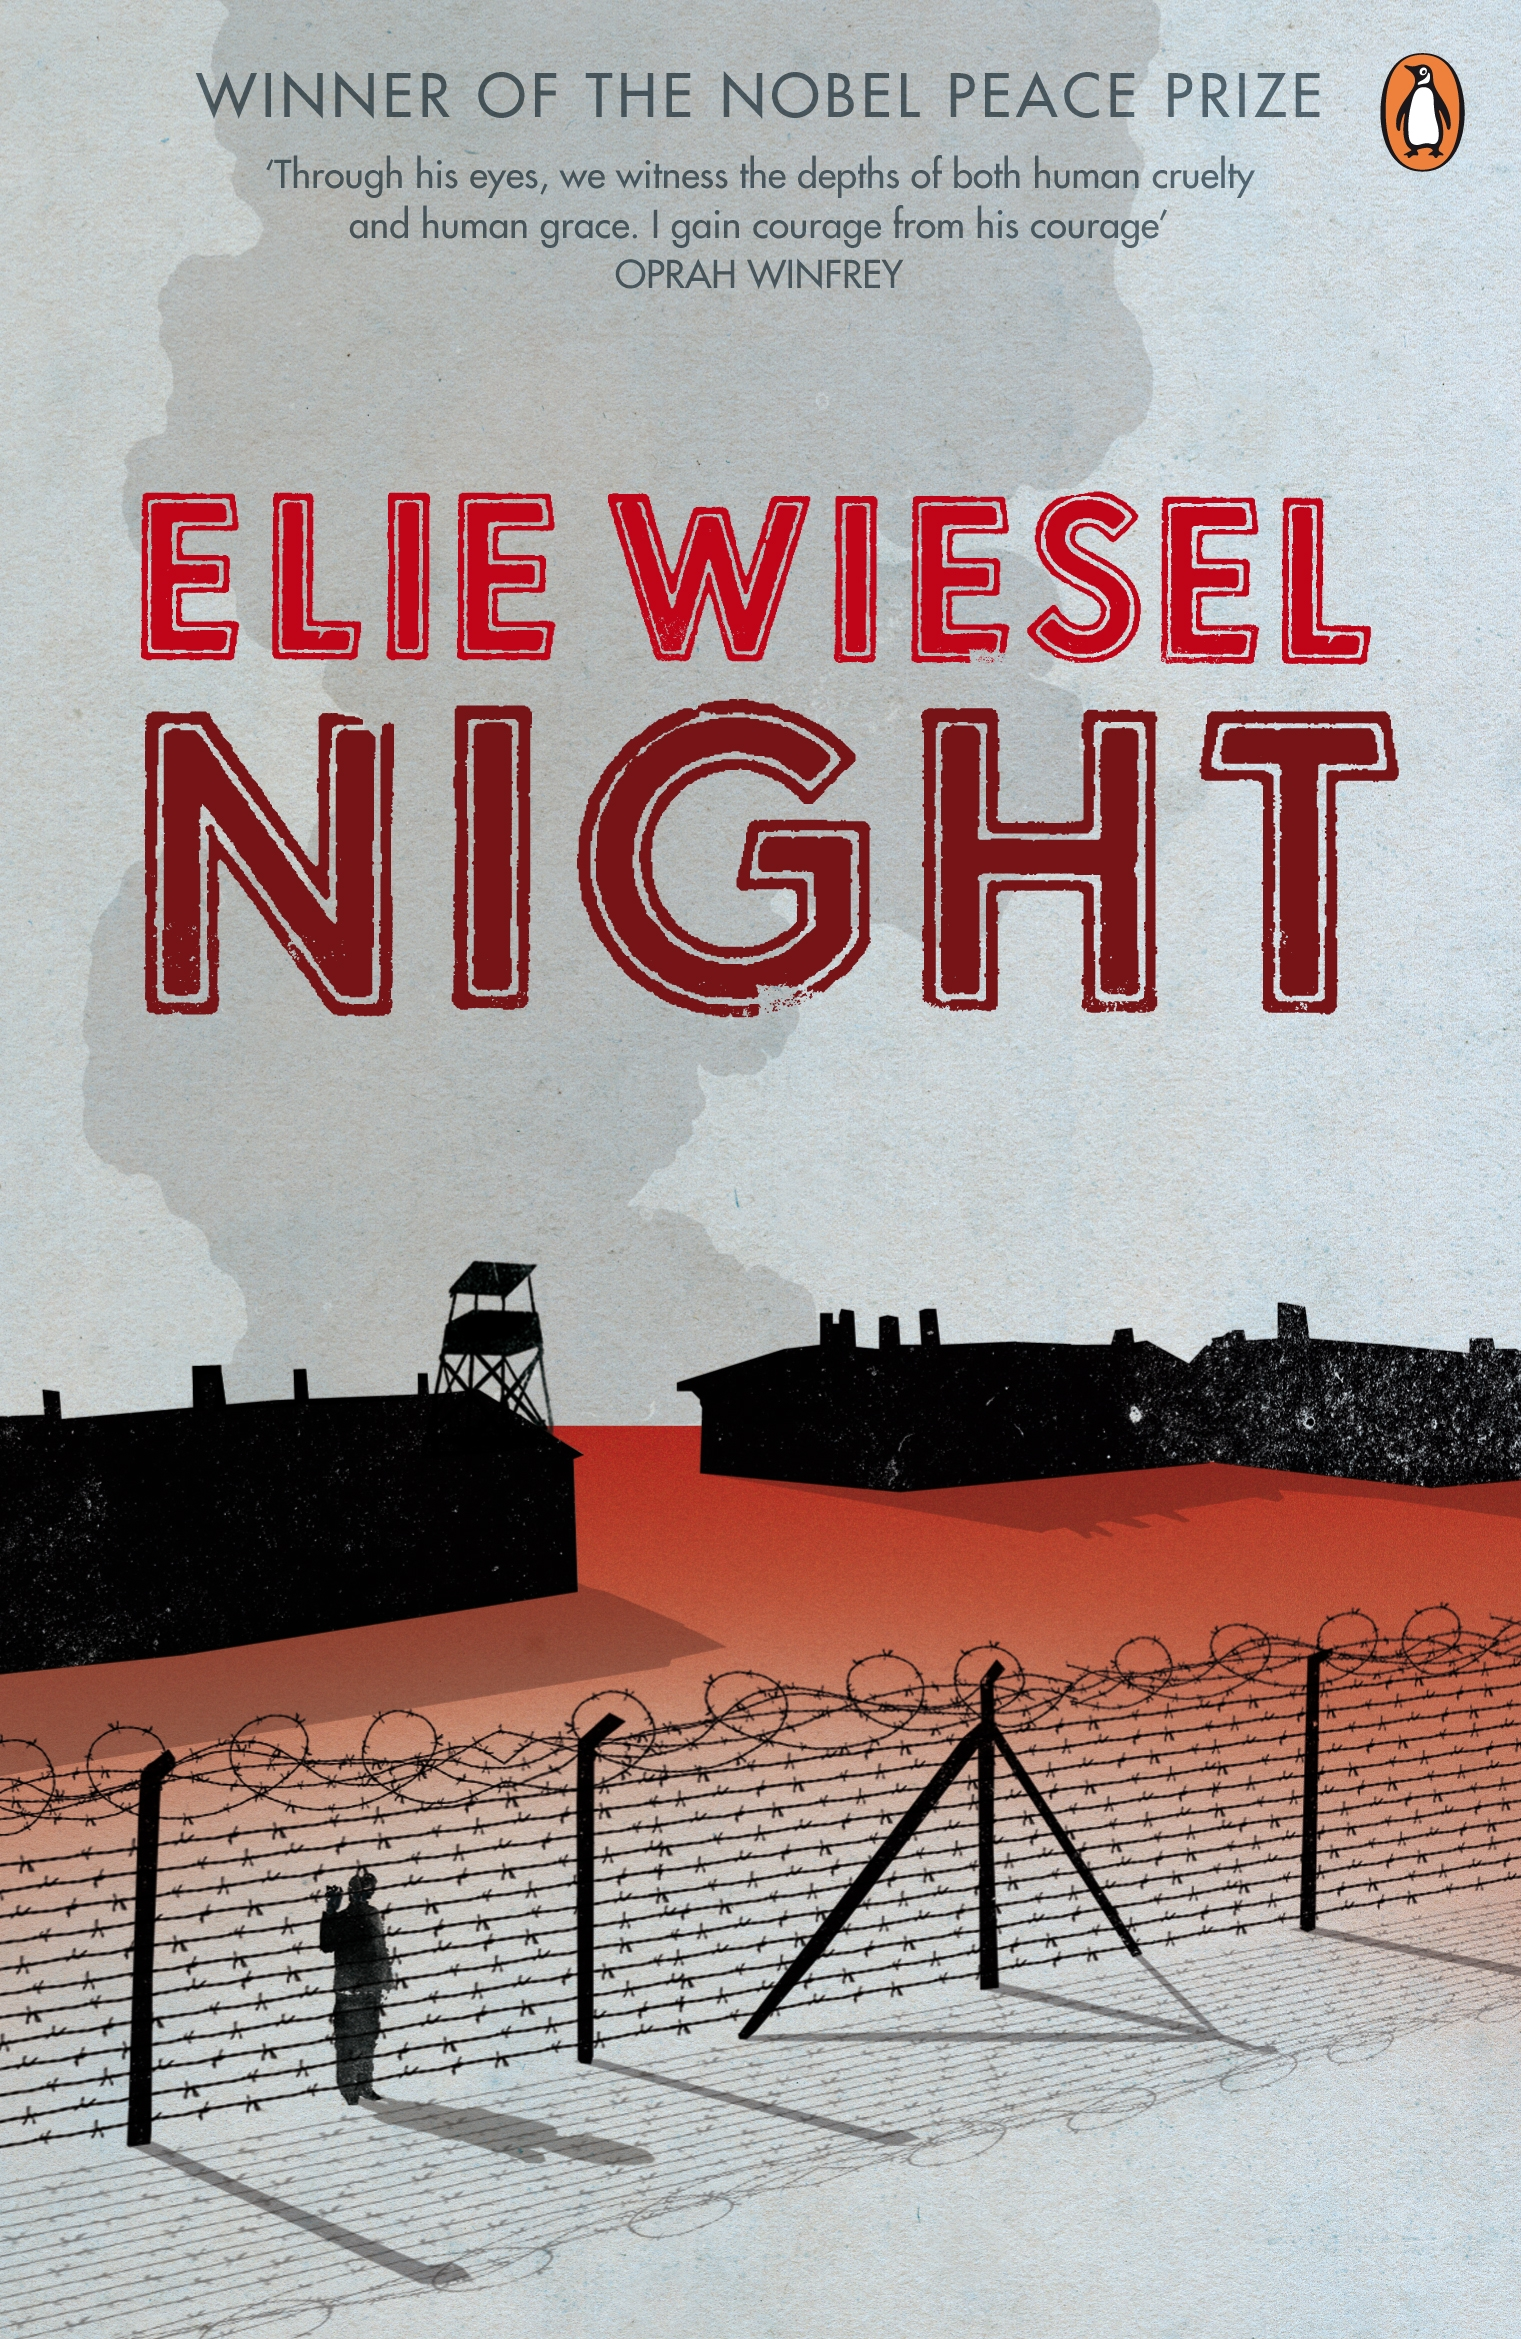 night by elie wiesel theme essay 91 121 113 106 night by elie wiesel theme essay